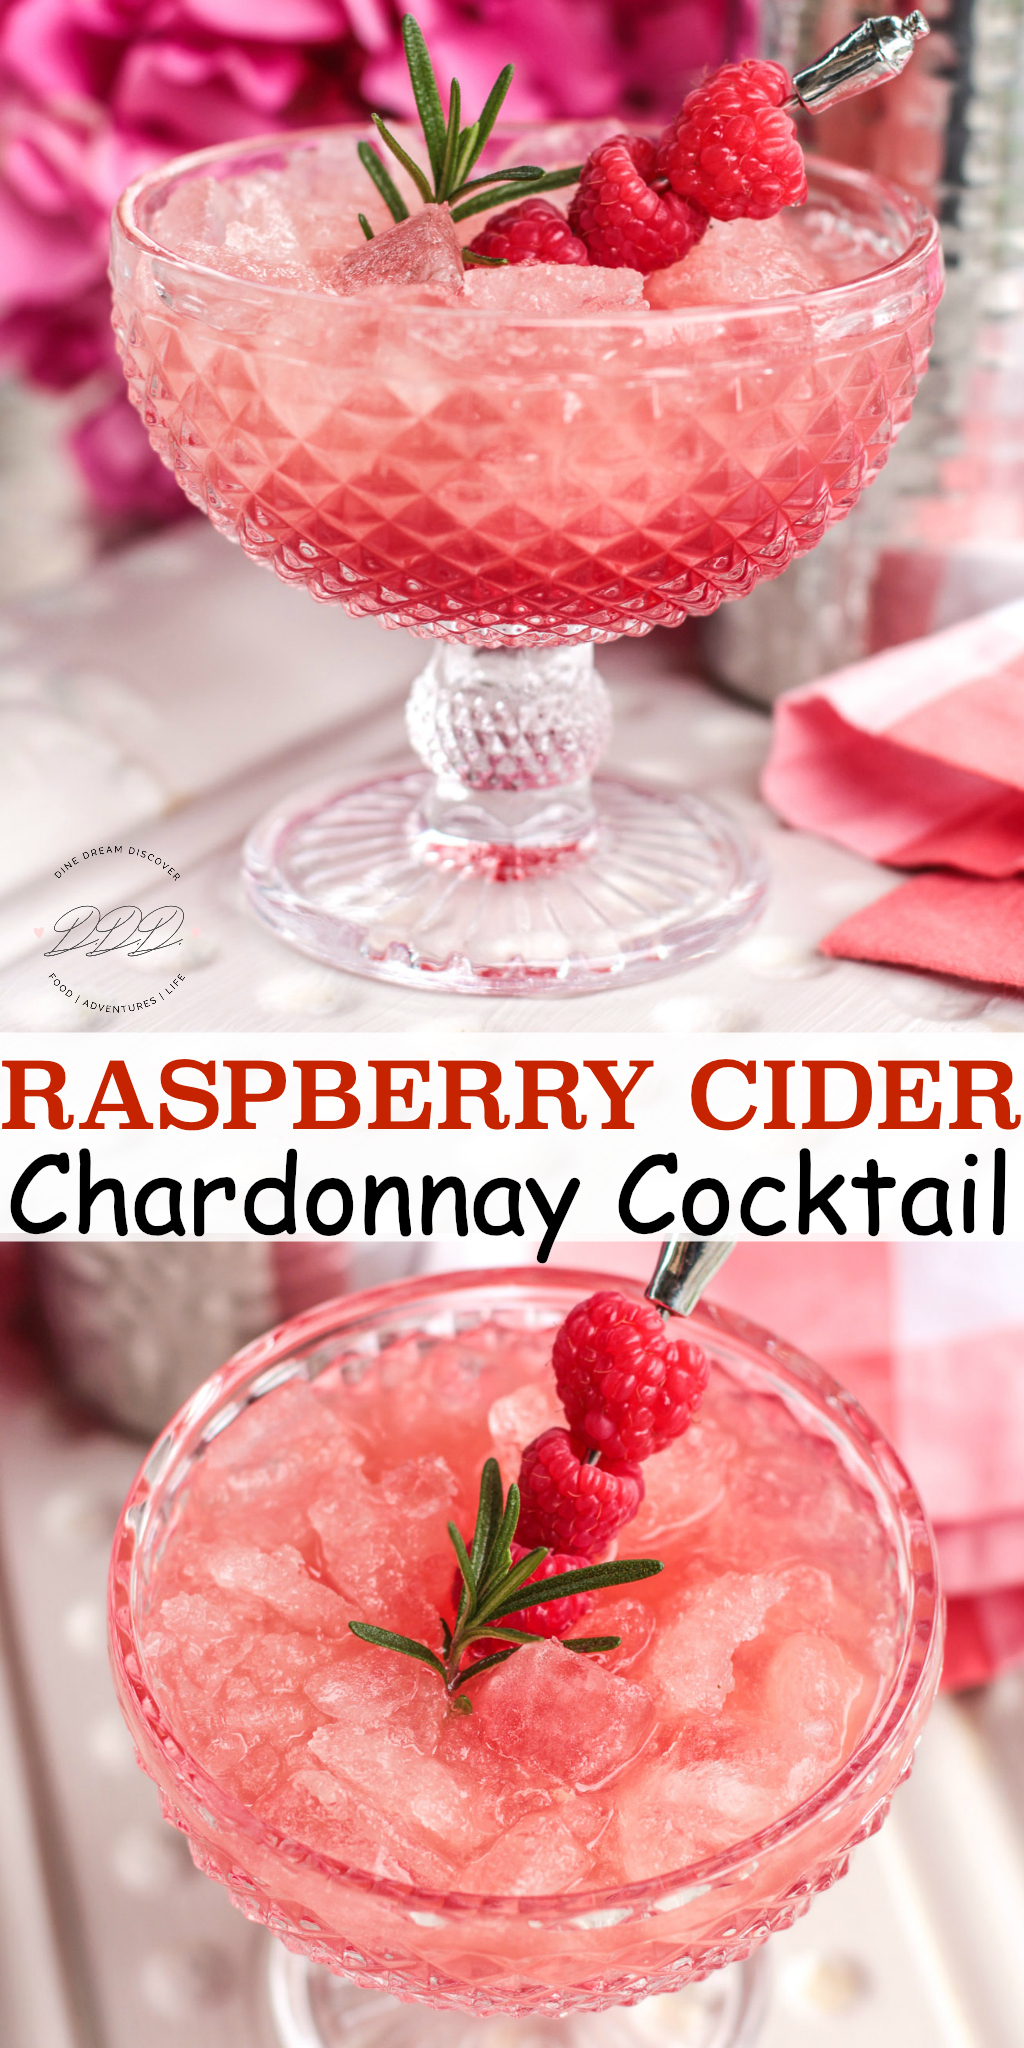 Raspberry Cider Chardonnay Cocktail recipe is a sweet and tangy cocktail that will tickle your tastebuds and set the mood for a romantic evening.